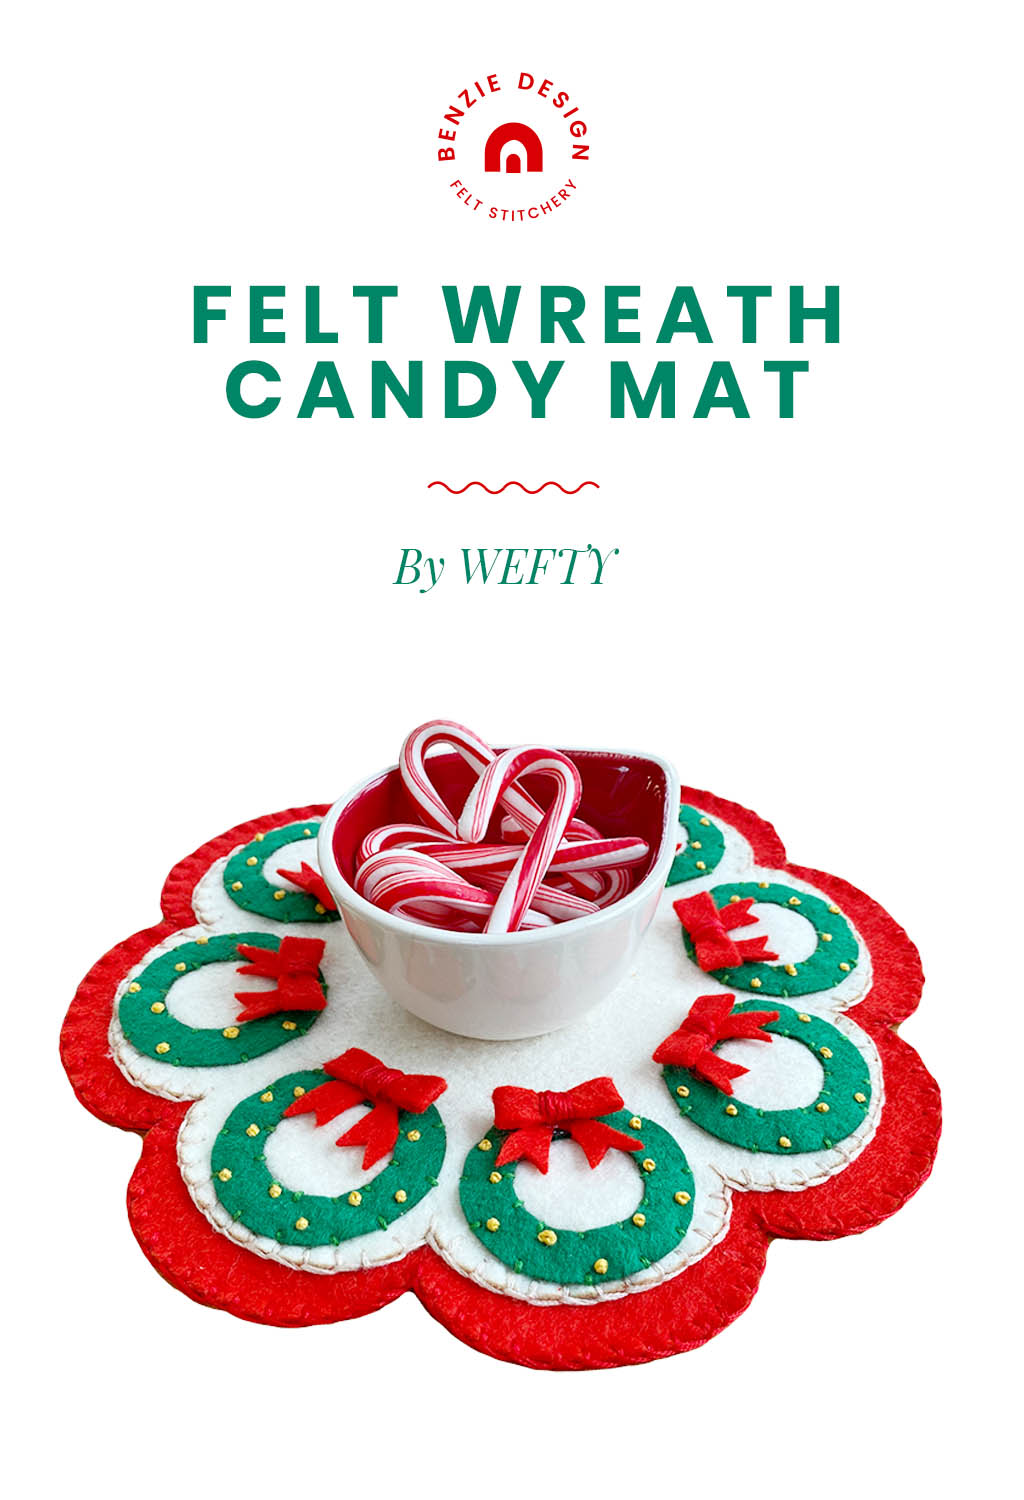 Felt Wreath Candy Mat Tutorial